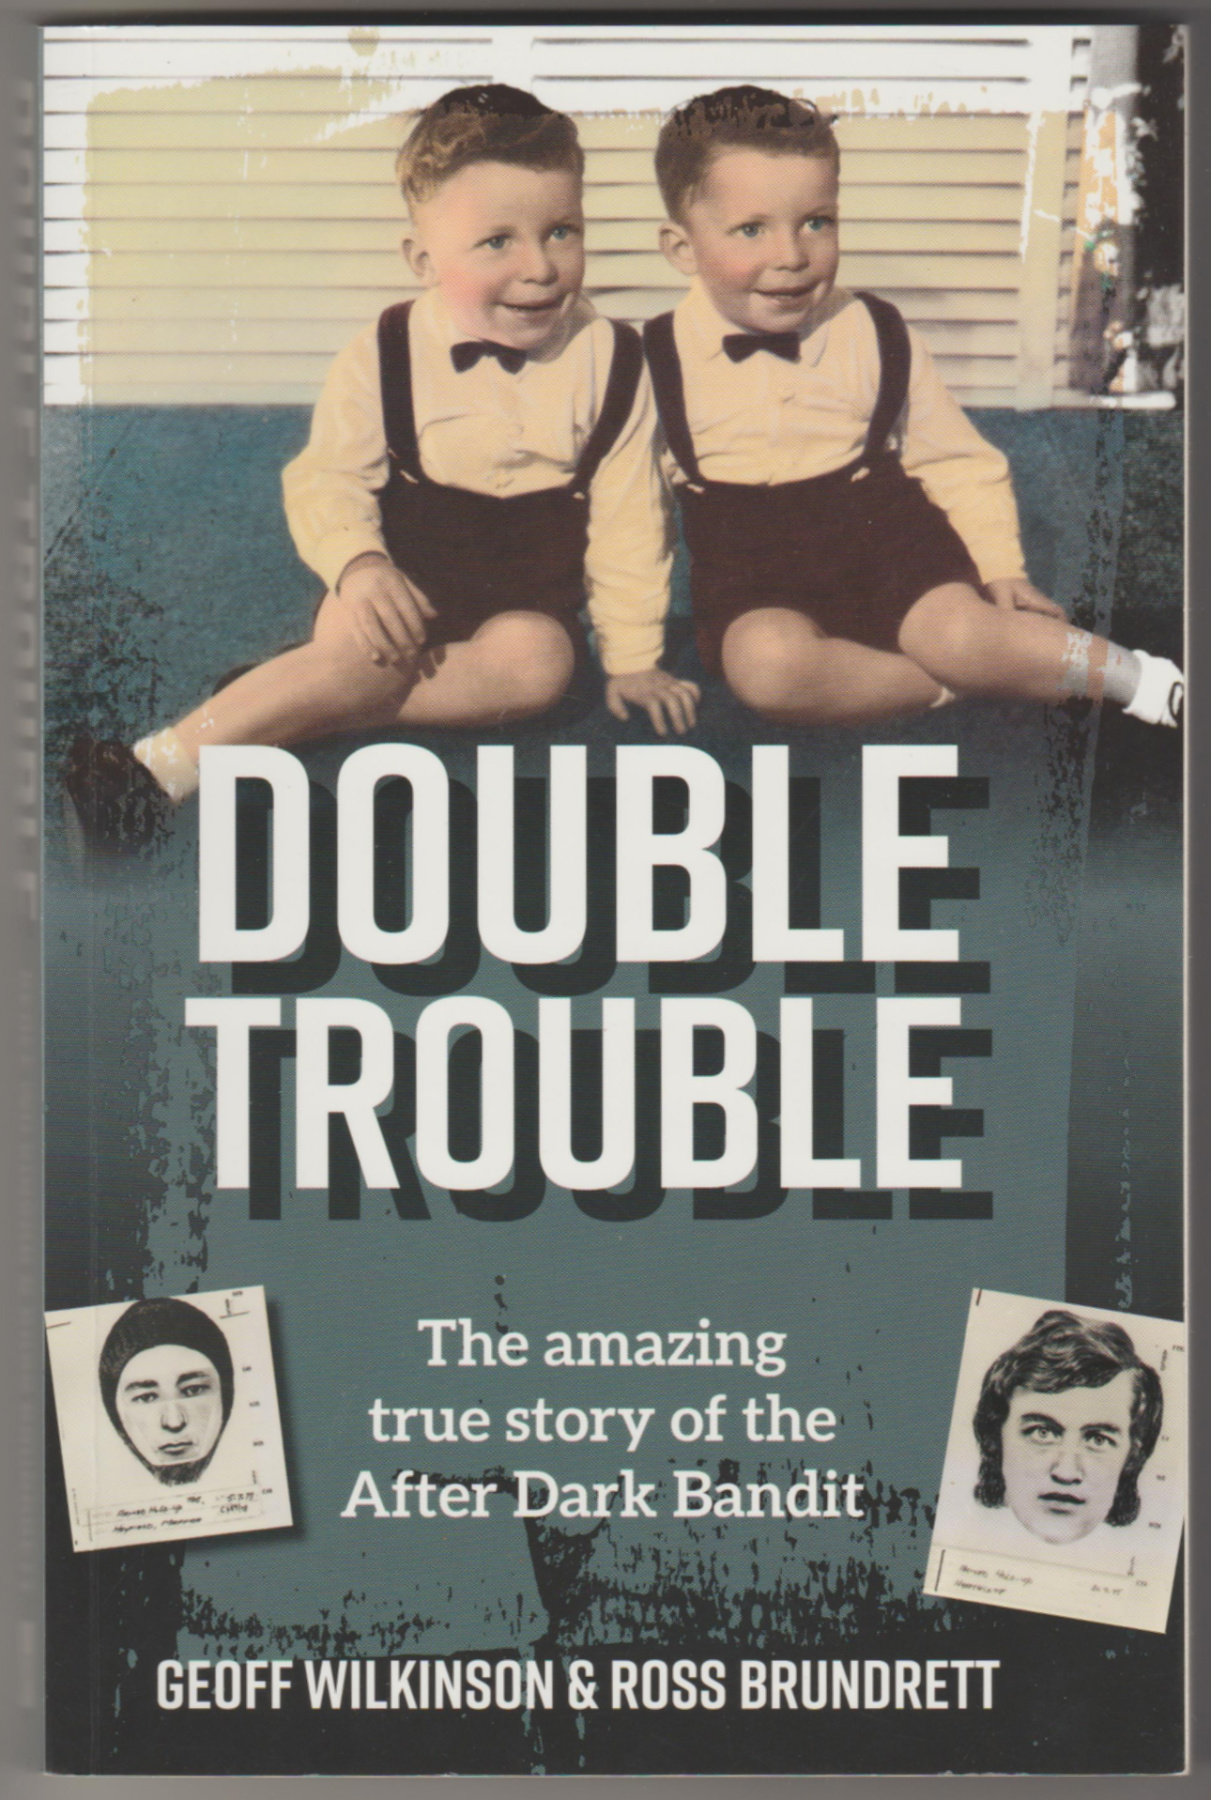 Image for DOUBLE TROUBLE: The Amazing True Story of the After Dark Bandit